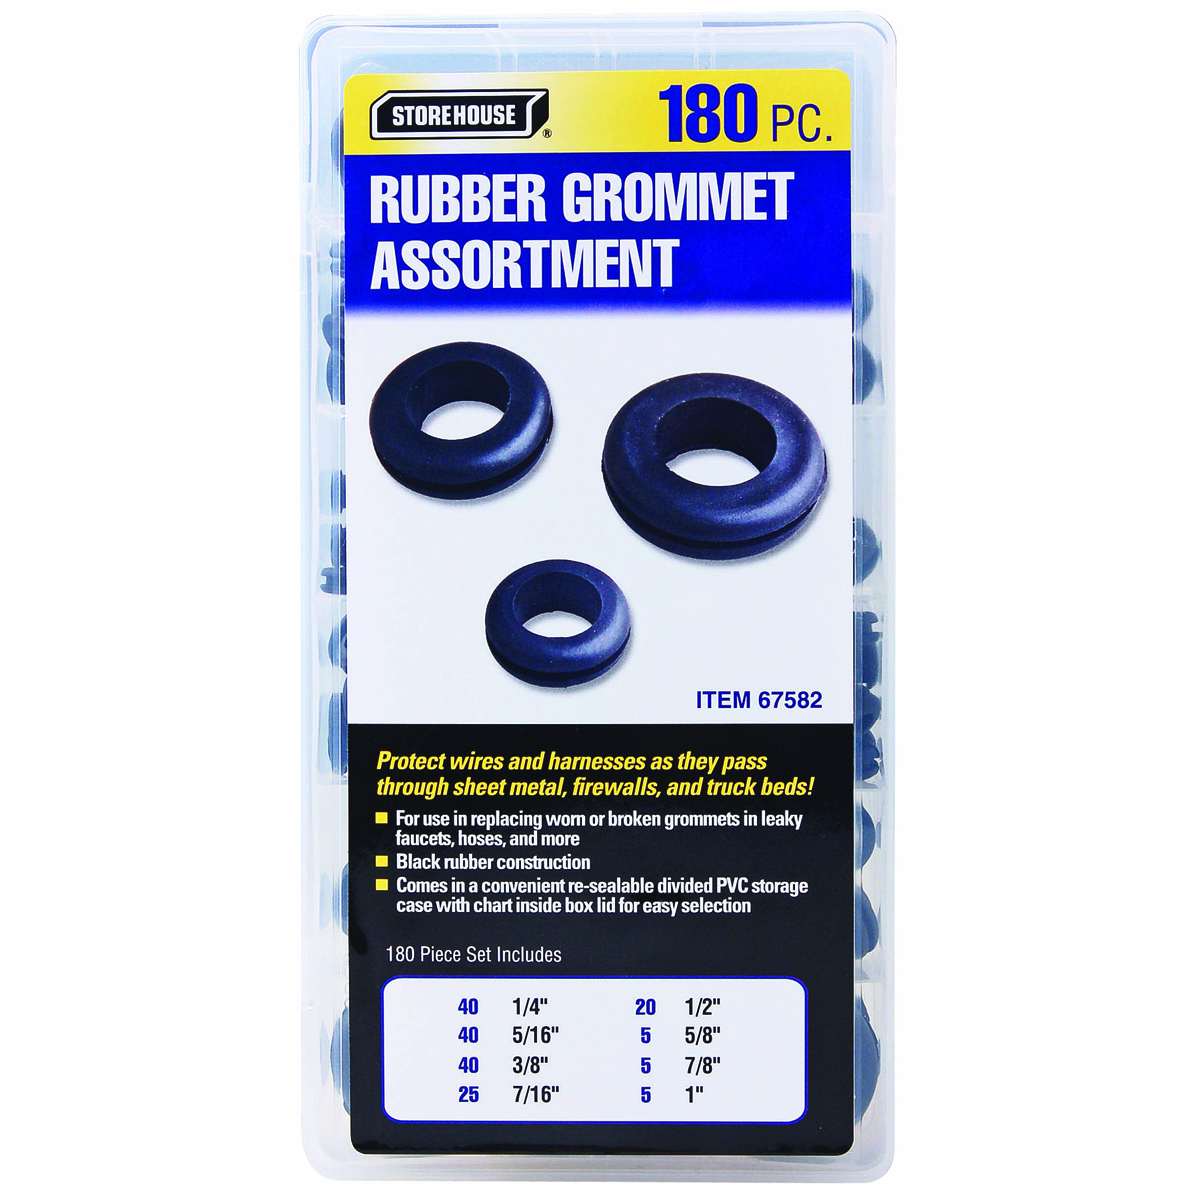 180 Piece Harness Grommet Set on 3 inch air filter, 3 inch clothespin, 3 inch dowel, 3 inch chain, 3 inch insulation, 3 inch staple, 3 inch block, 3 inch harness, 3 inch shaft, 3 inch strap, 3 inch panel, 3 inch cylinder, 3 inch cord, 3 inch ferrule, 3 inch bearing, 3 inch bushing, 3 inch boot, 3 inch connector, 3 inch trim, 3 inch mount,